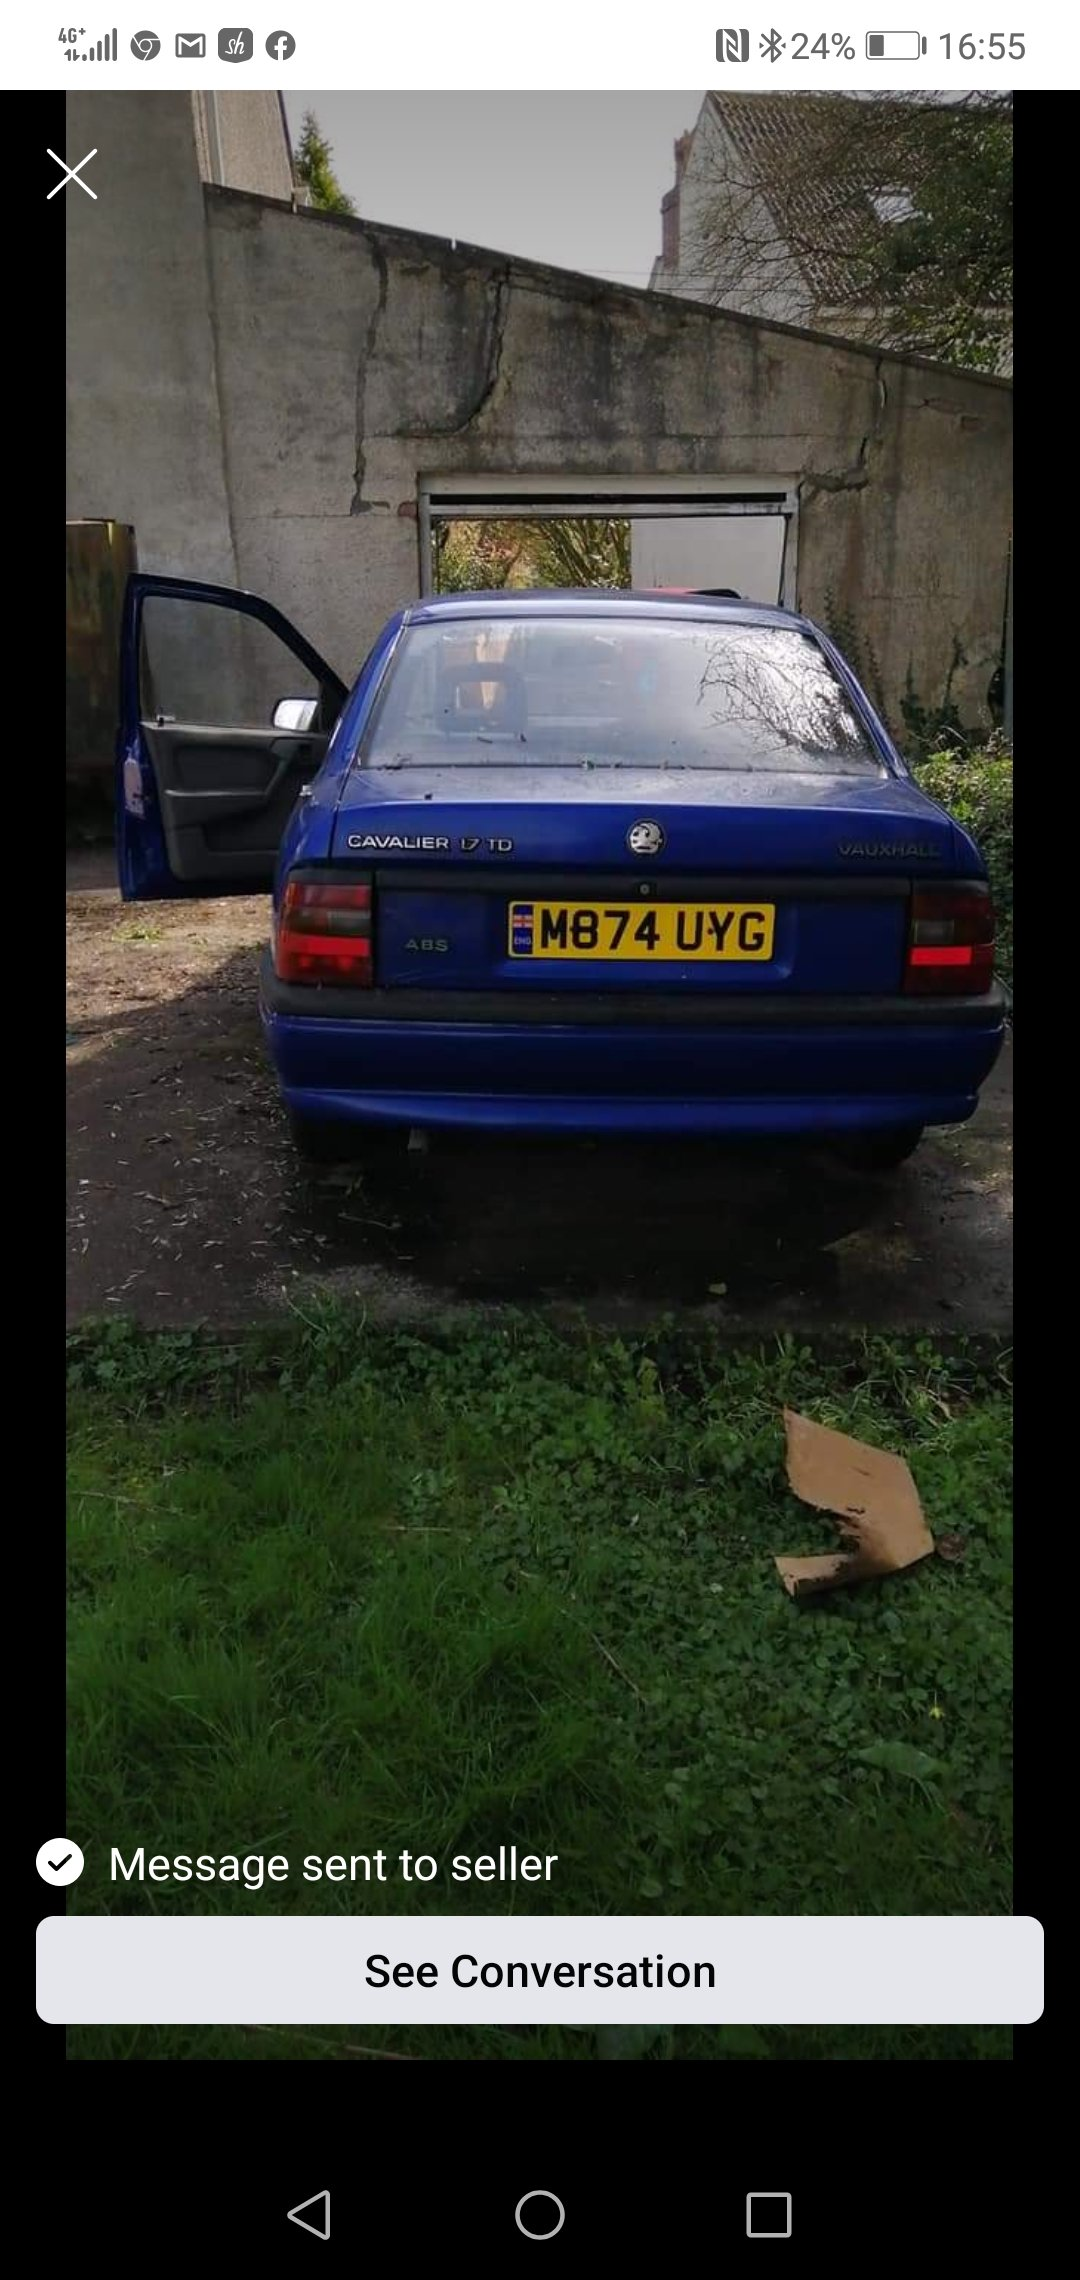 1994 Vauxhall cavalier 1.7 td ** restoration project * For Sale (picture 4 of 6)